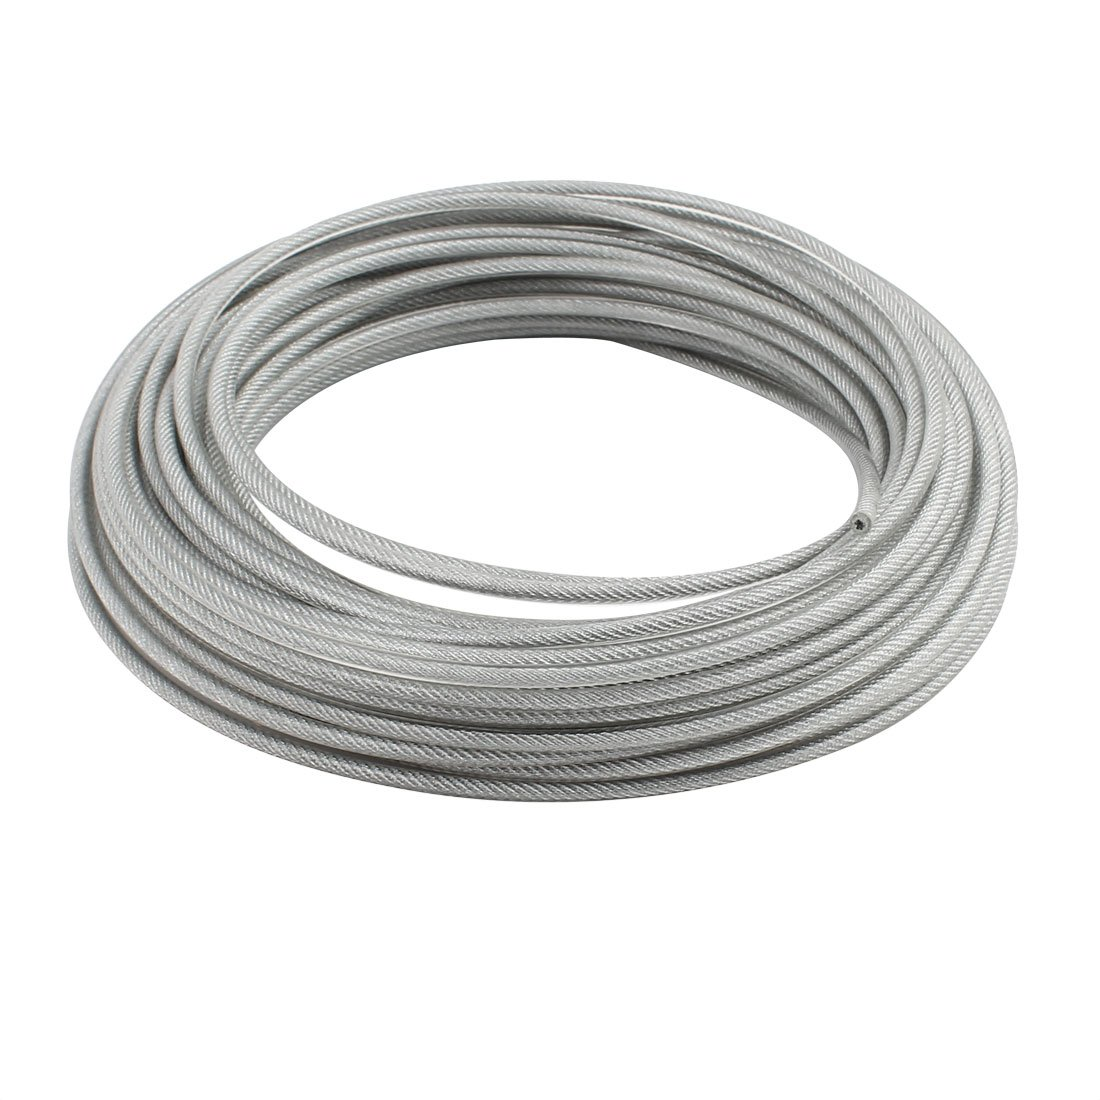 uxcell 4mm Diameter Vinyl Coated Wire Rope Aircraft Cable 20 Meters Length